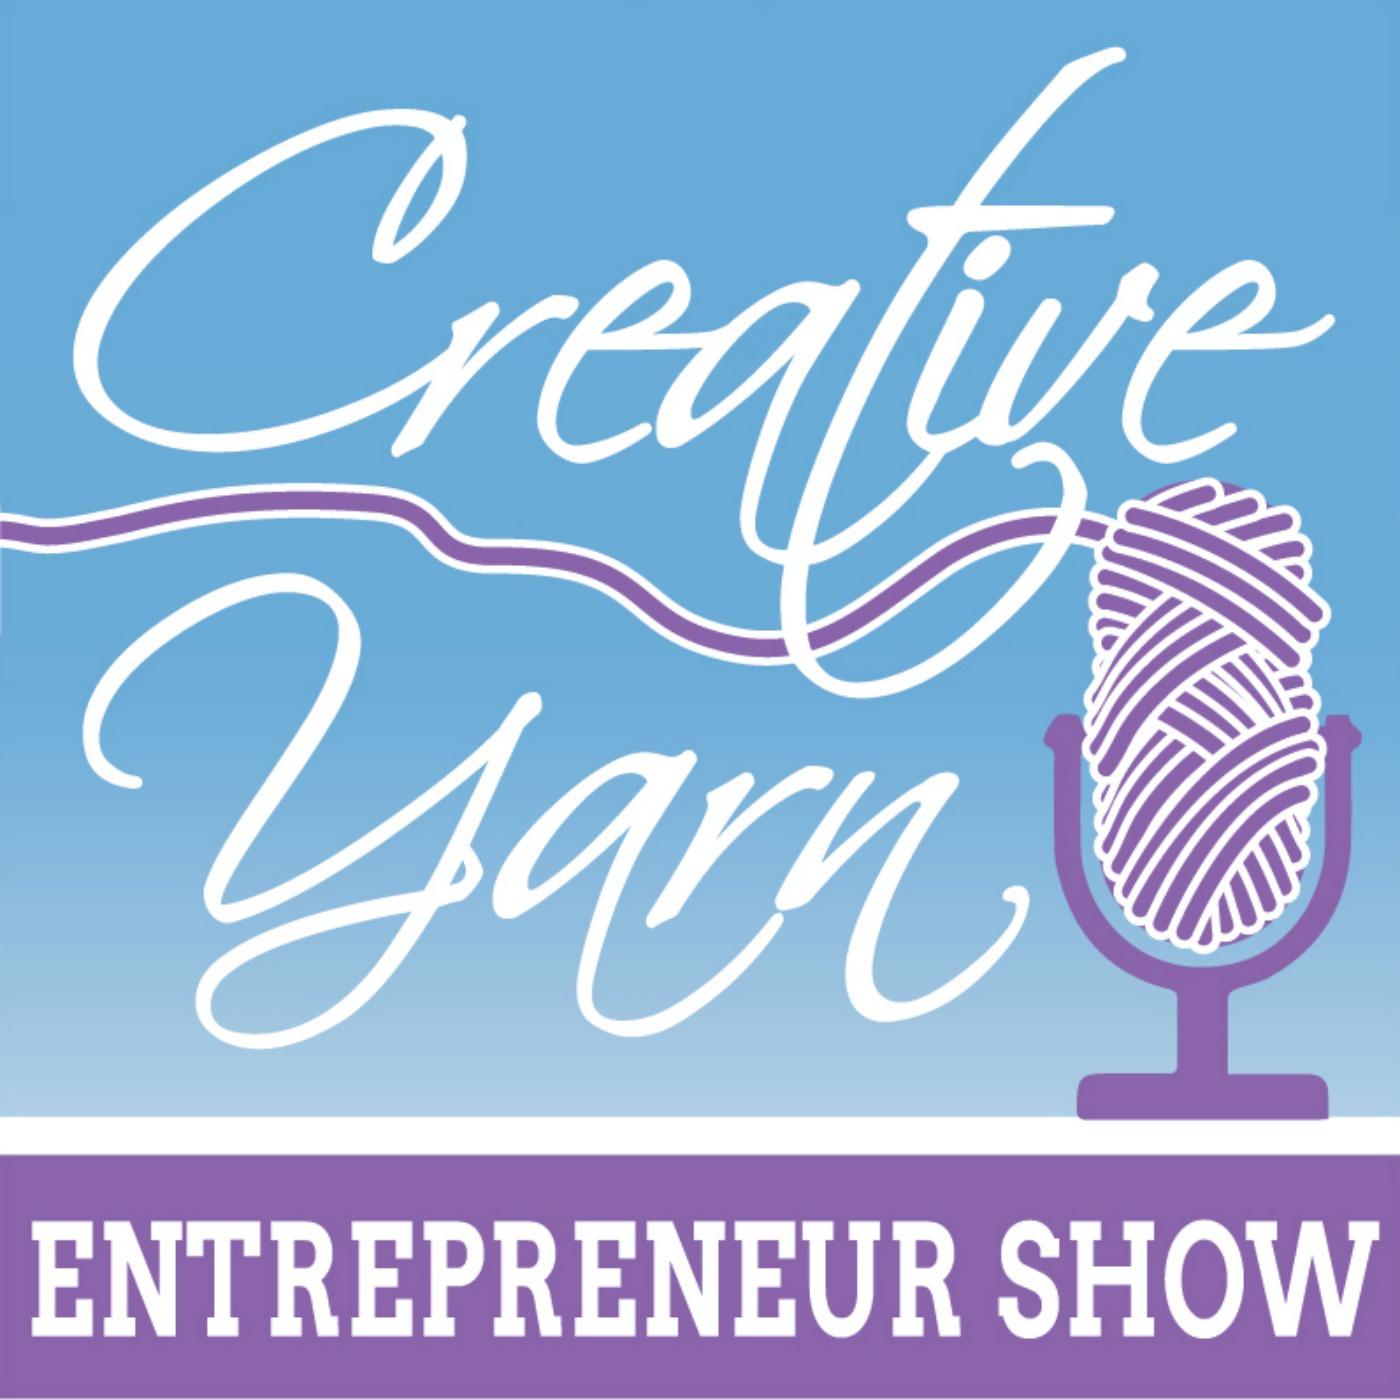 Episode 12: Indie Design Gift-a-Long 2014! An interview with Nina Machlin Dayton, Simone Kereit, Lindsay Lewchuk, and Alex Tinsley - The Creative Yarn Entrepreneur Show